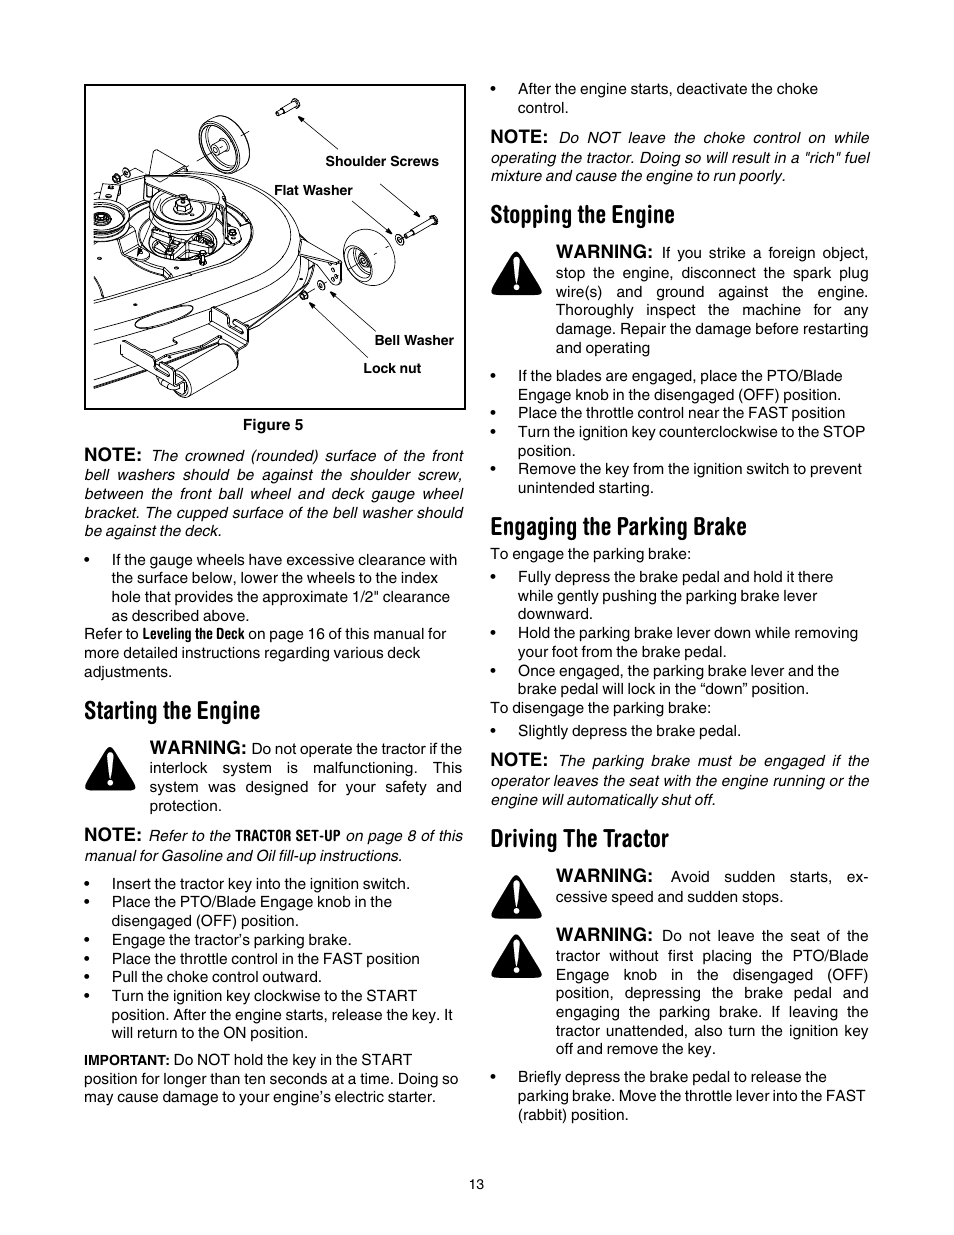 Starting the engine, Stopping the engine, Engaging the parking brake | Cub  Cadet LT1022 User Manual | Page 13 / 28